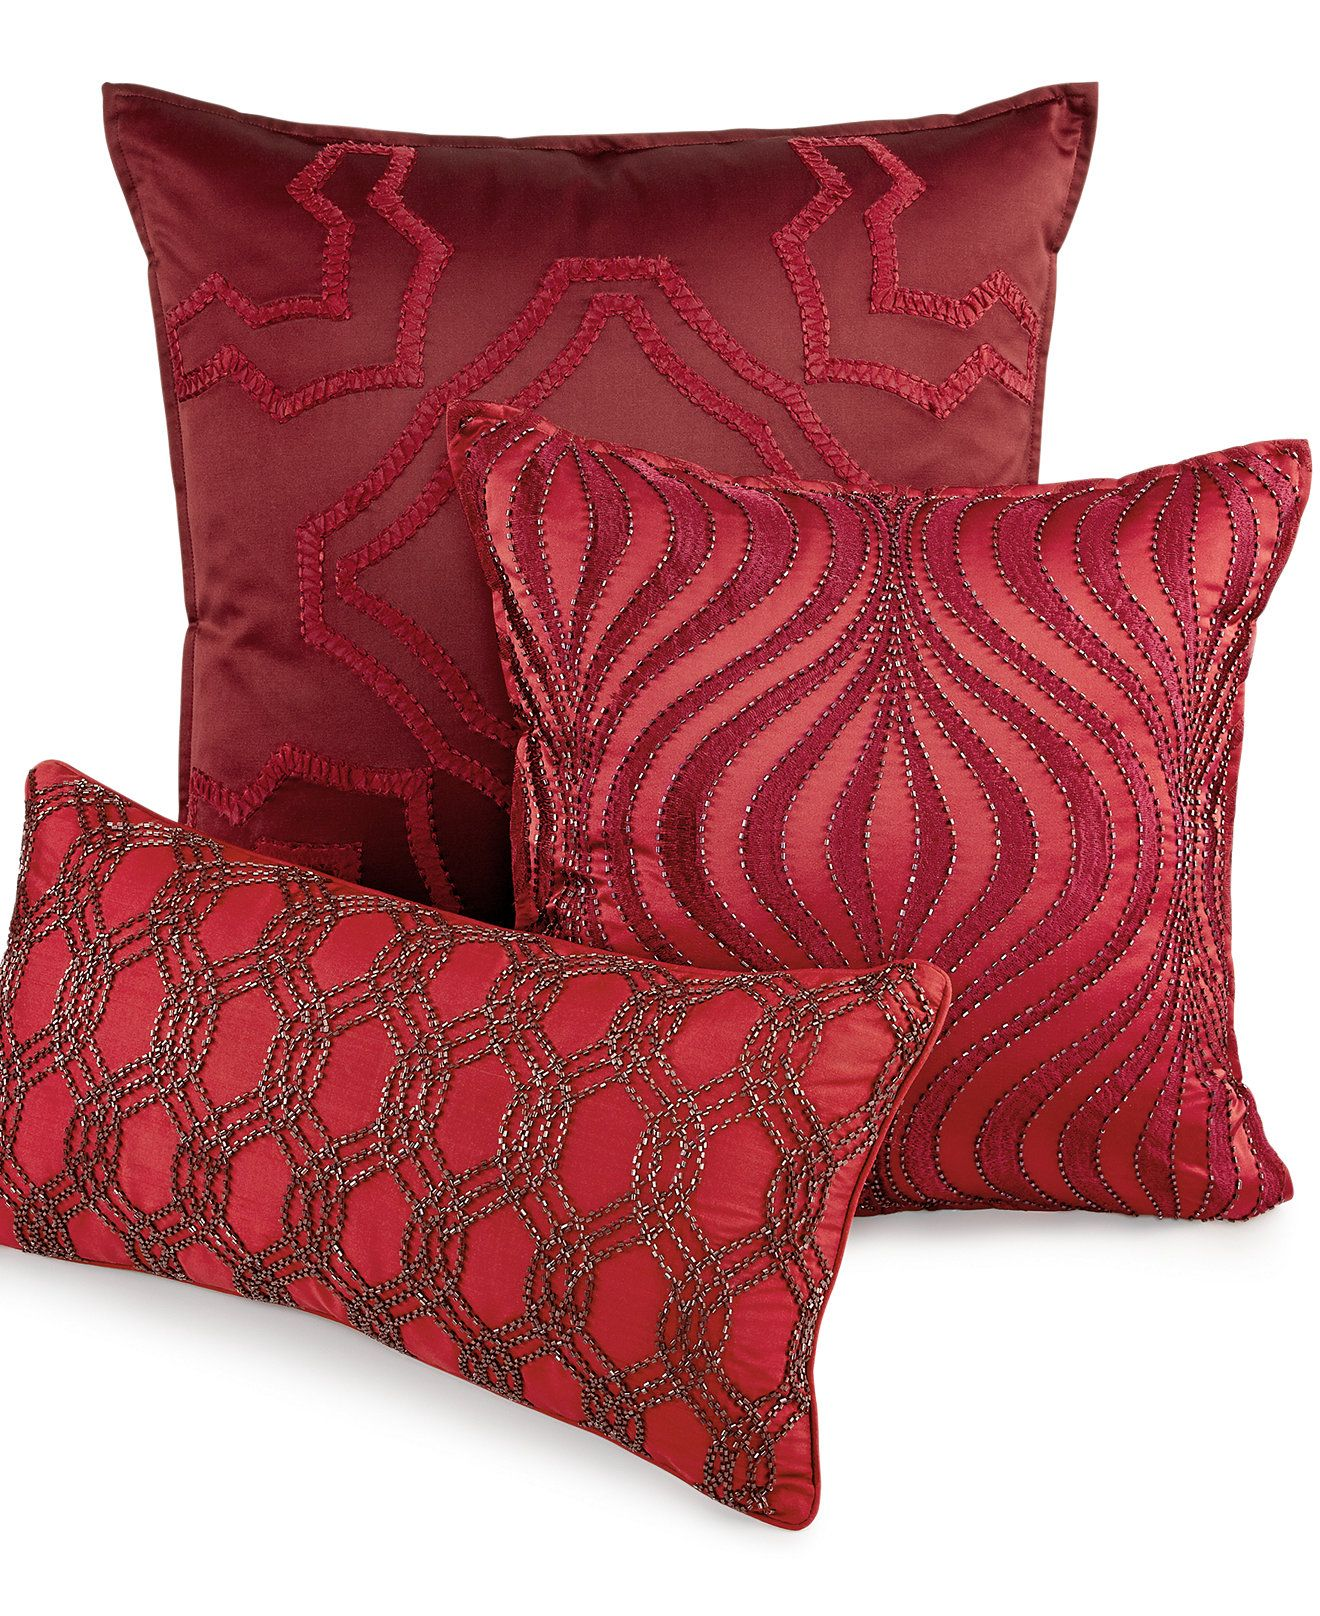 Macy's Decorative Pillows Unique Closeout Hotel Collection Medallion Decorative Pillow Collection Design Inspiration